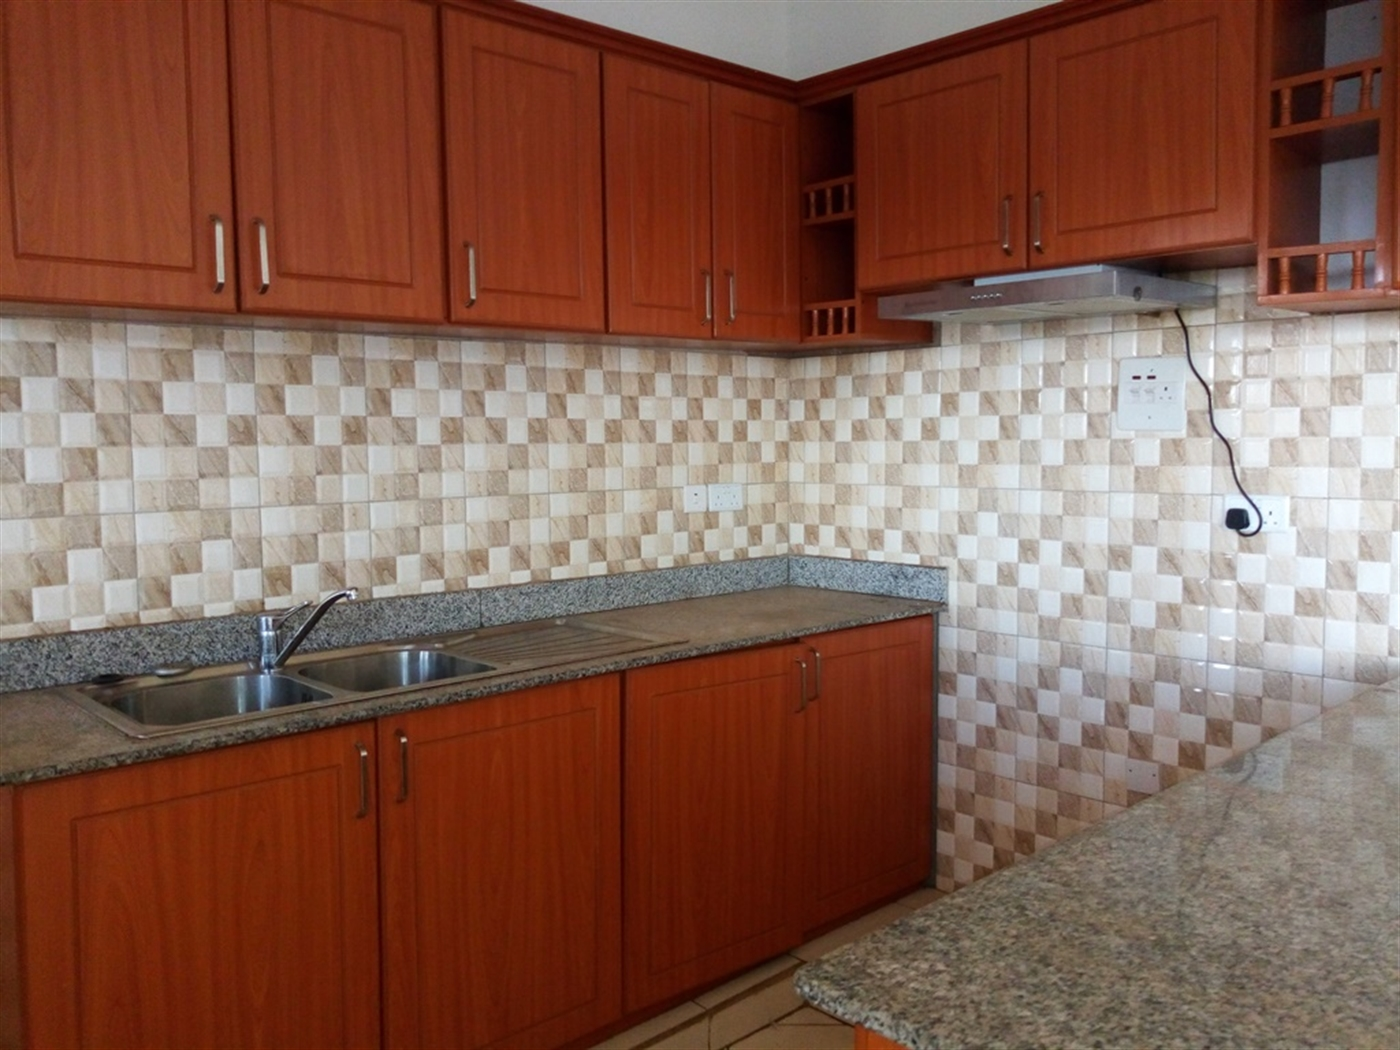 Apartment for rent in Ntinda Wakiso